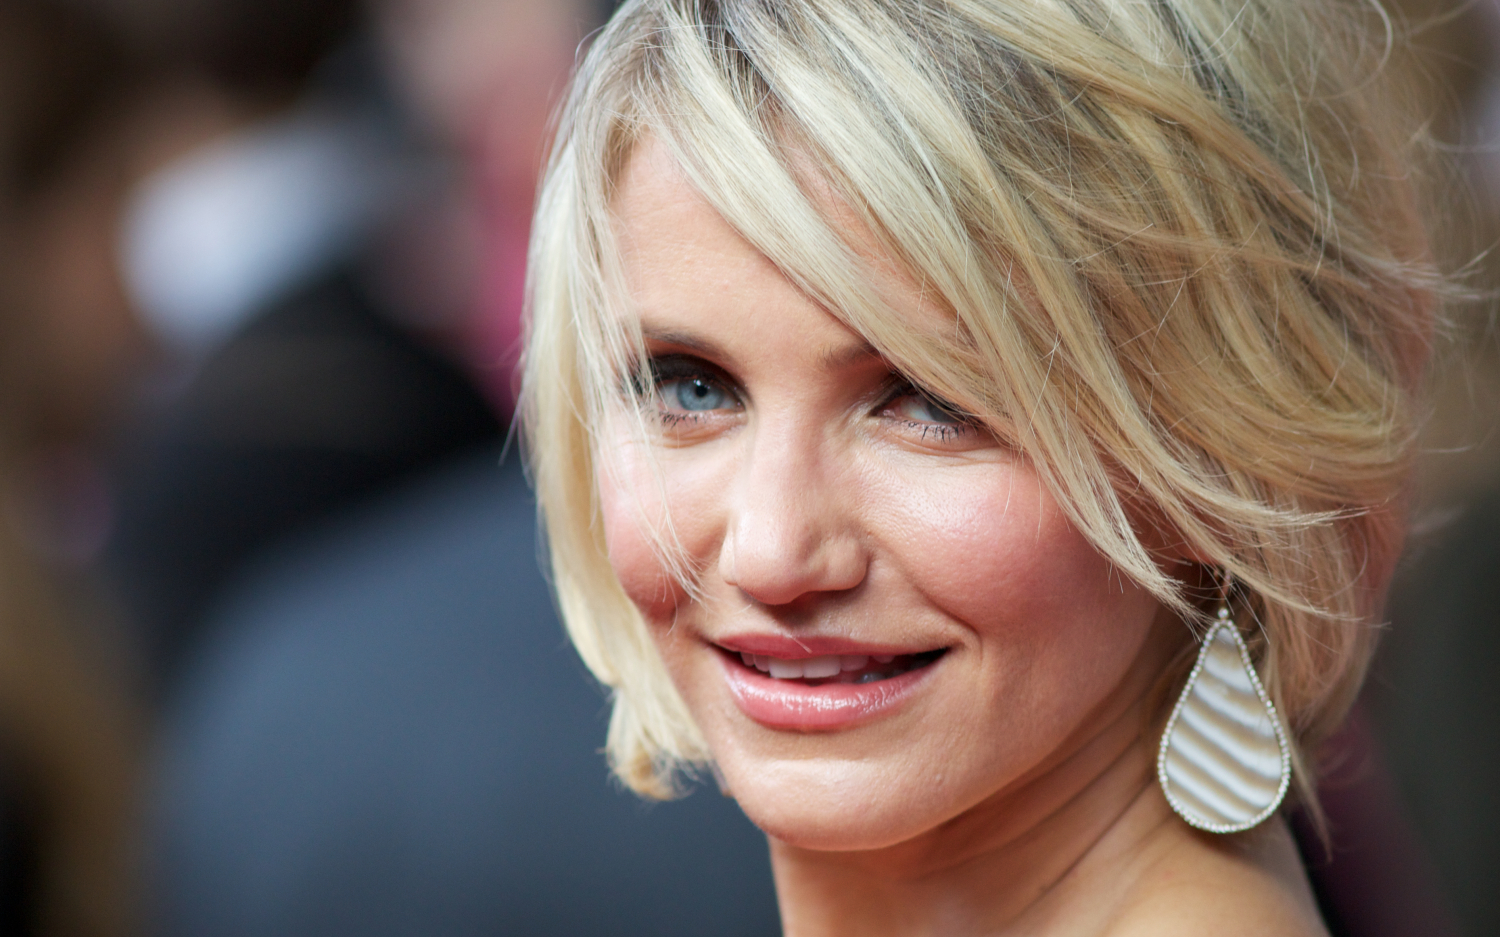 smile cameron diaz hd face desktop wallpaper download